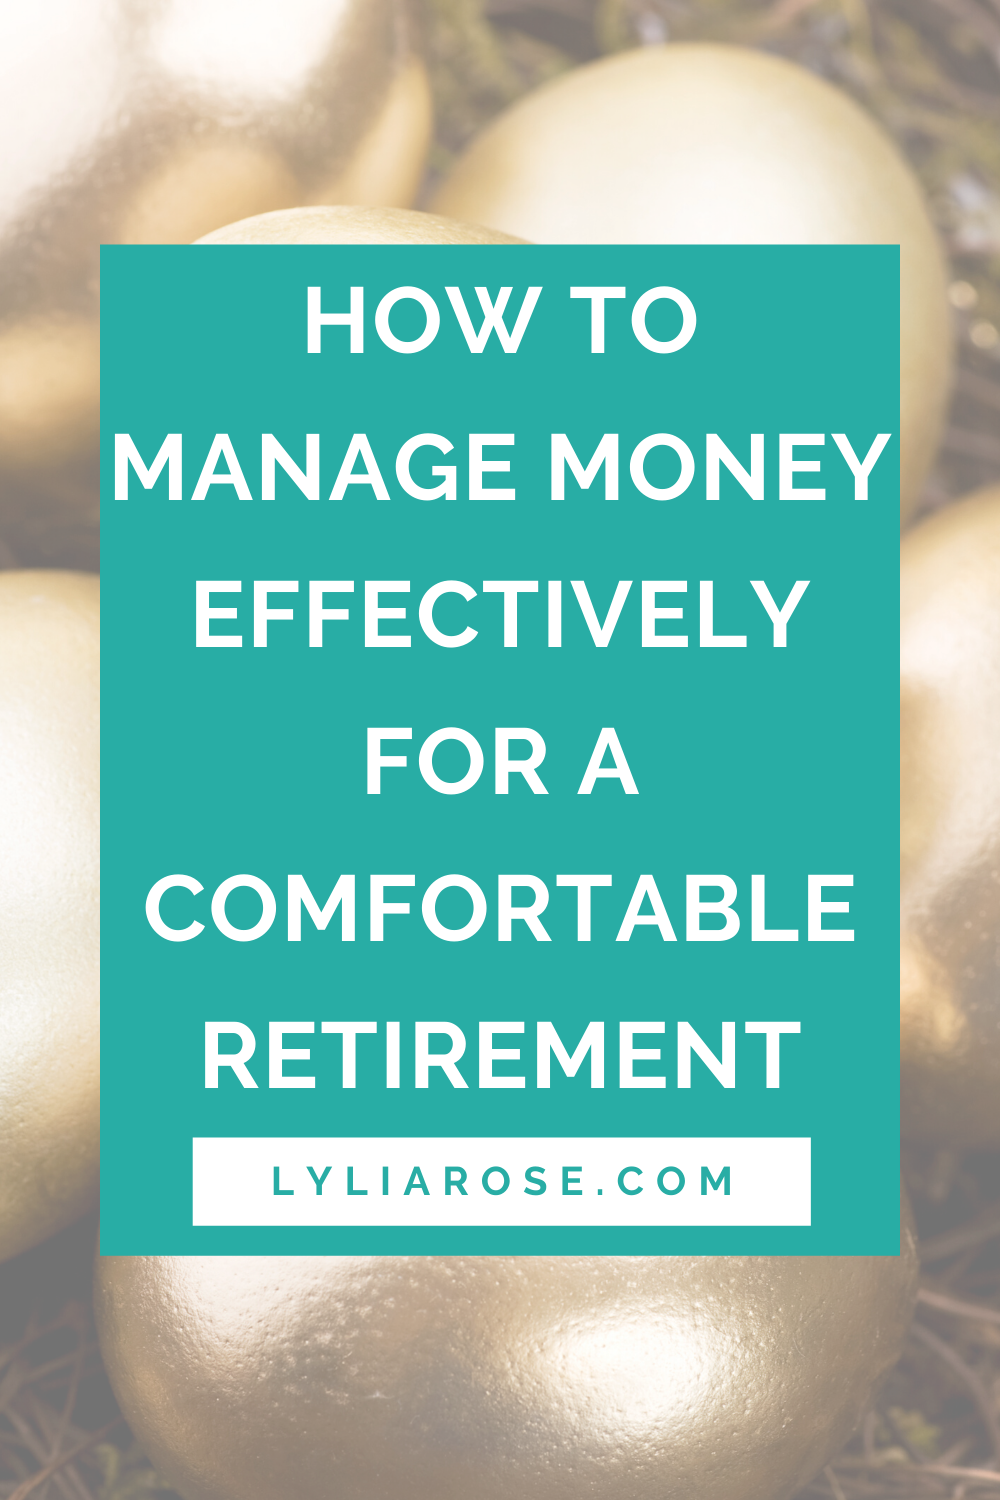 How to manage money effectively for a comfortable retirement